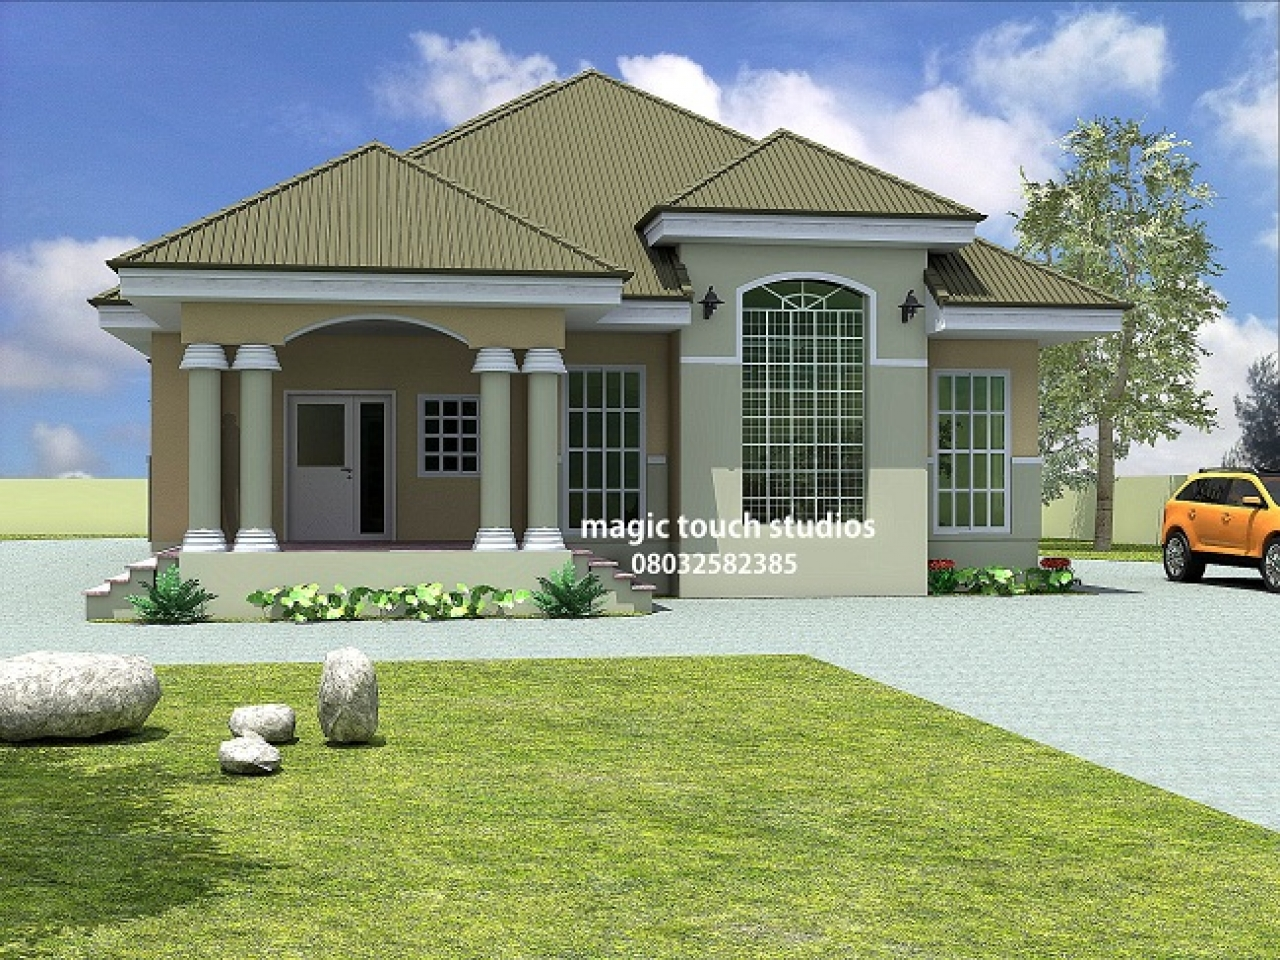 5 Bedroom Bungalow House Plan In Nigeria 5 Bedroom Floor